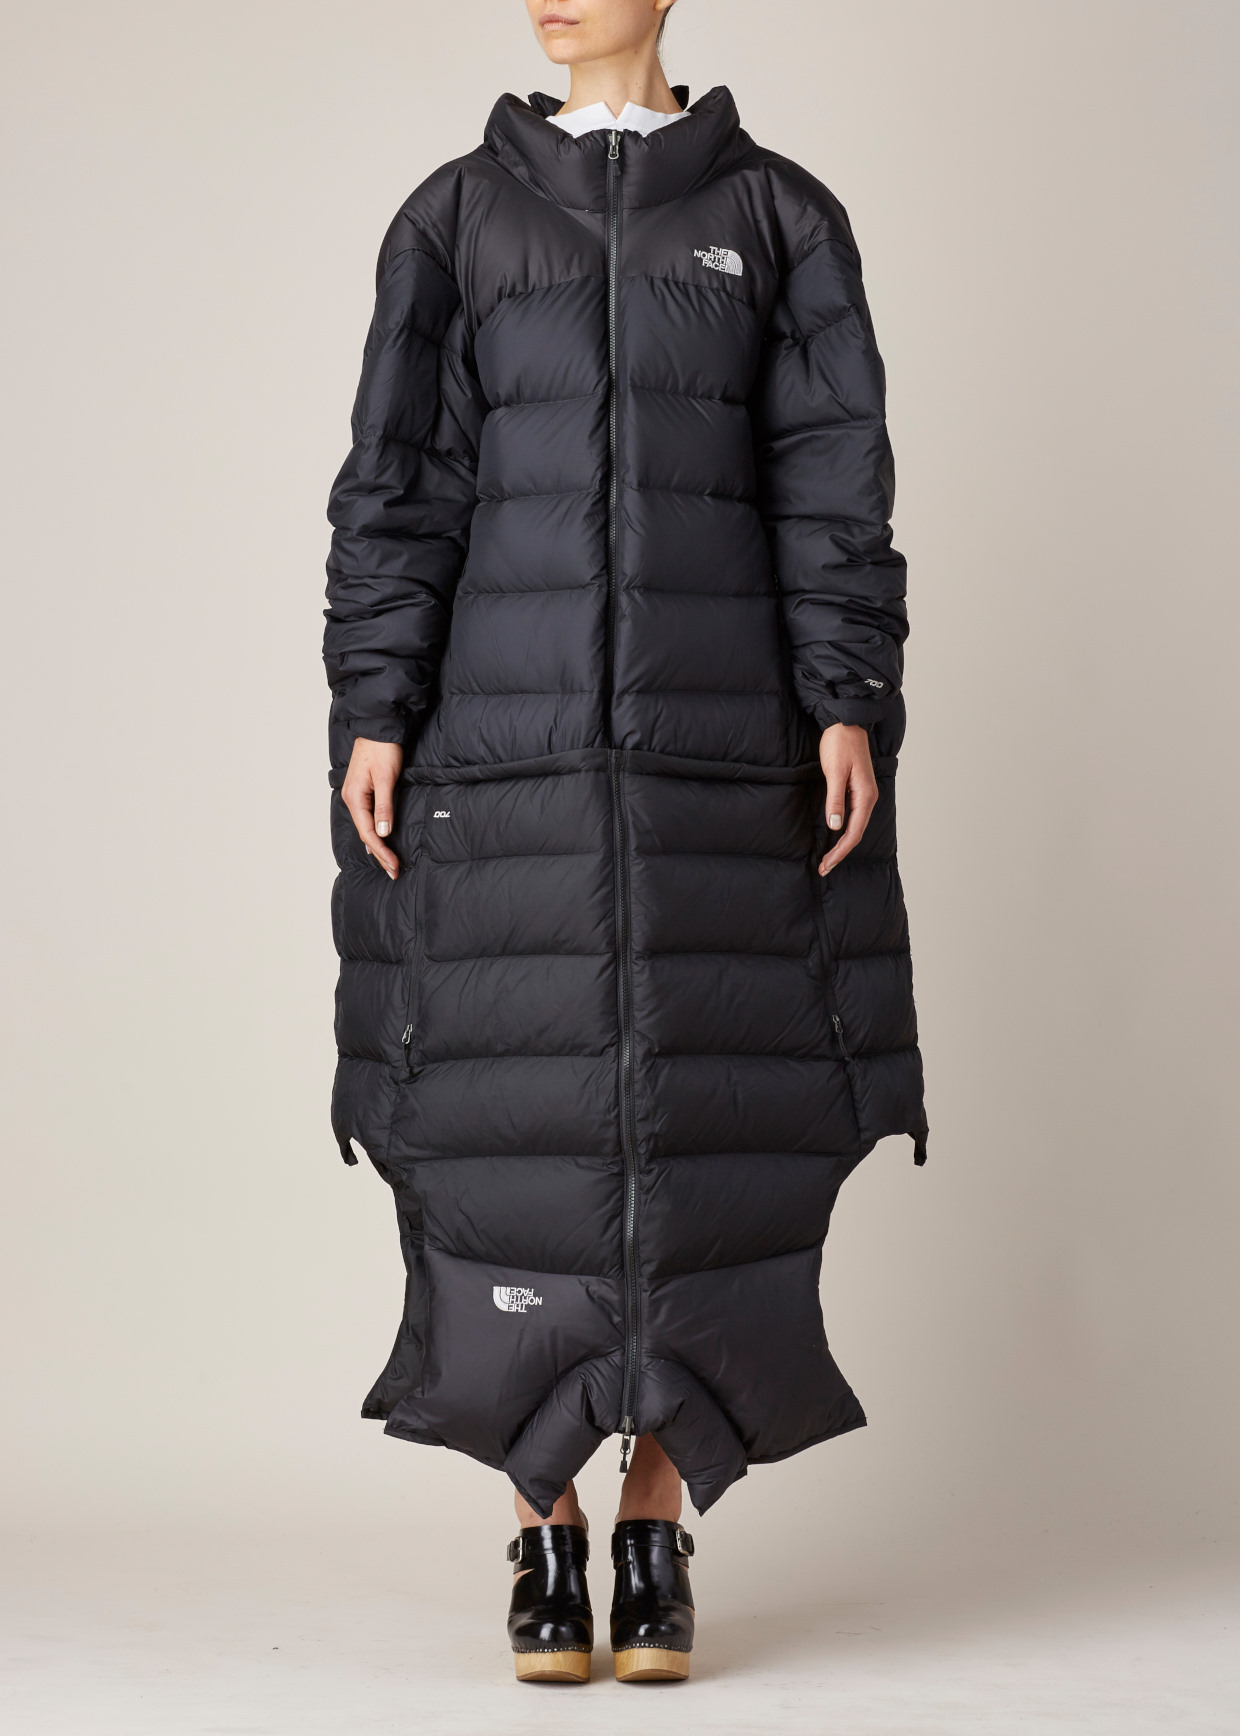 Lyst Vetements Black Reworked Puffer Coat In Black